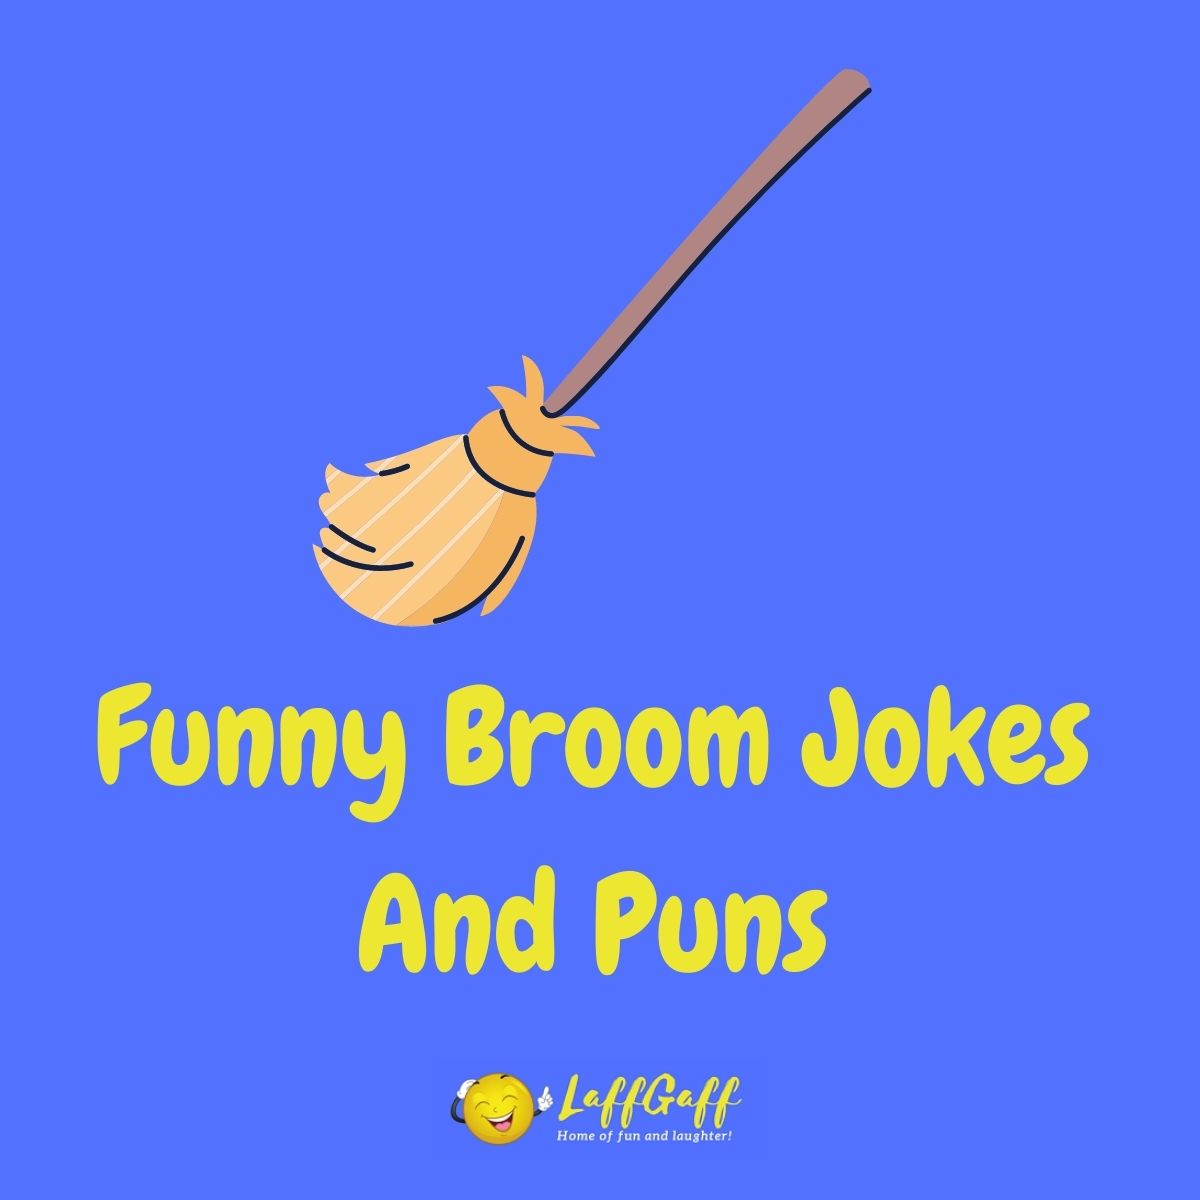 Featured image for a page of funny broom jokes and puns.